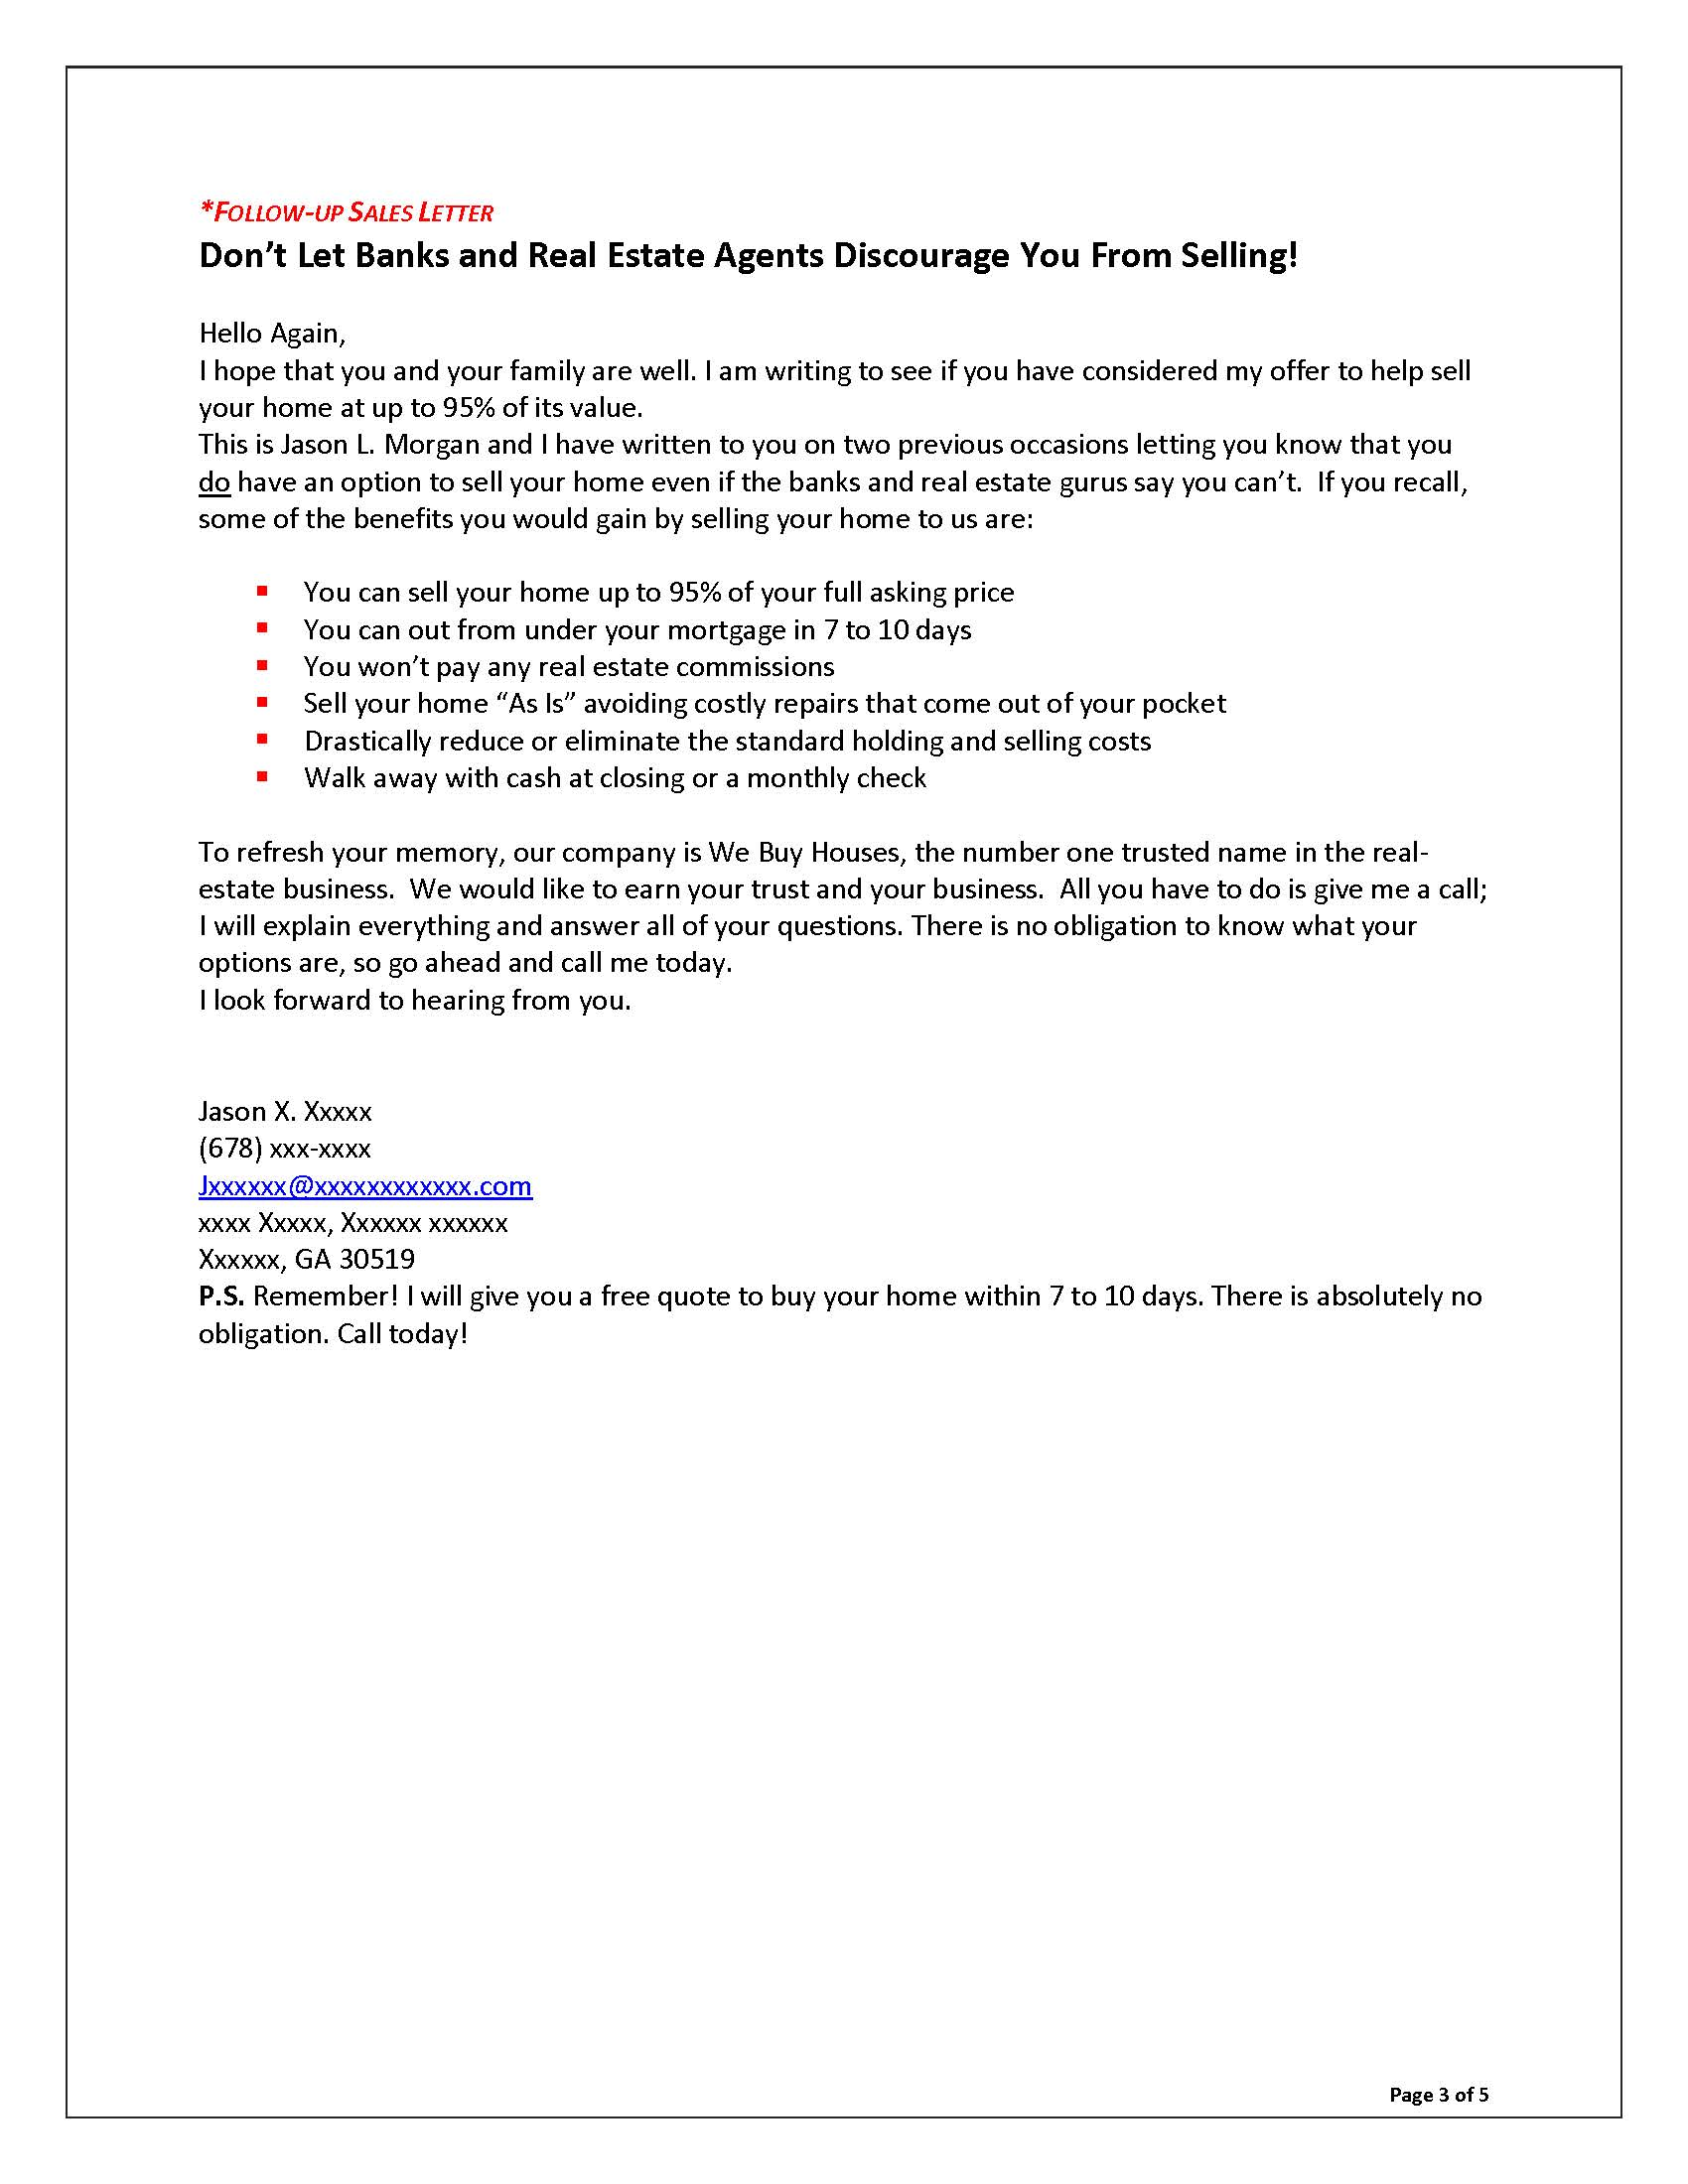 Sales Letter Series - Real Estate Co._Page_3